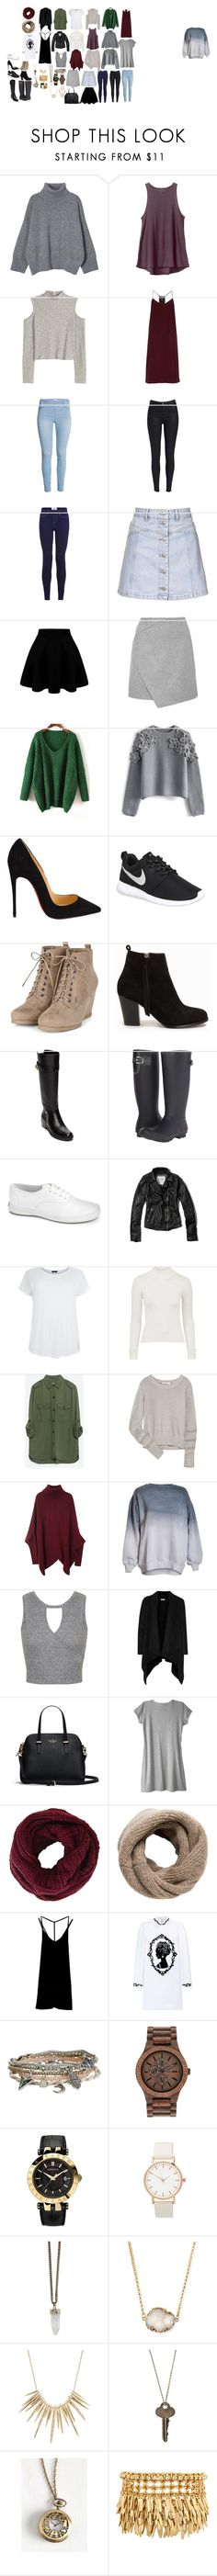 """capsule closet winter"" by emmaw817 ❤ liked on Polyvore featuring RVCA, TIBI, Topshop, Chicwish, Christian Louboutin, NIKE, Nly Shoes, Tommy Hilfiger, Keds and Abercrombie & Fitch"